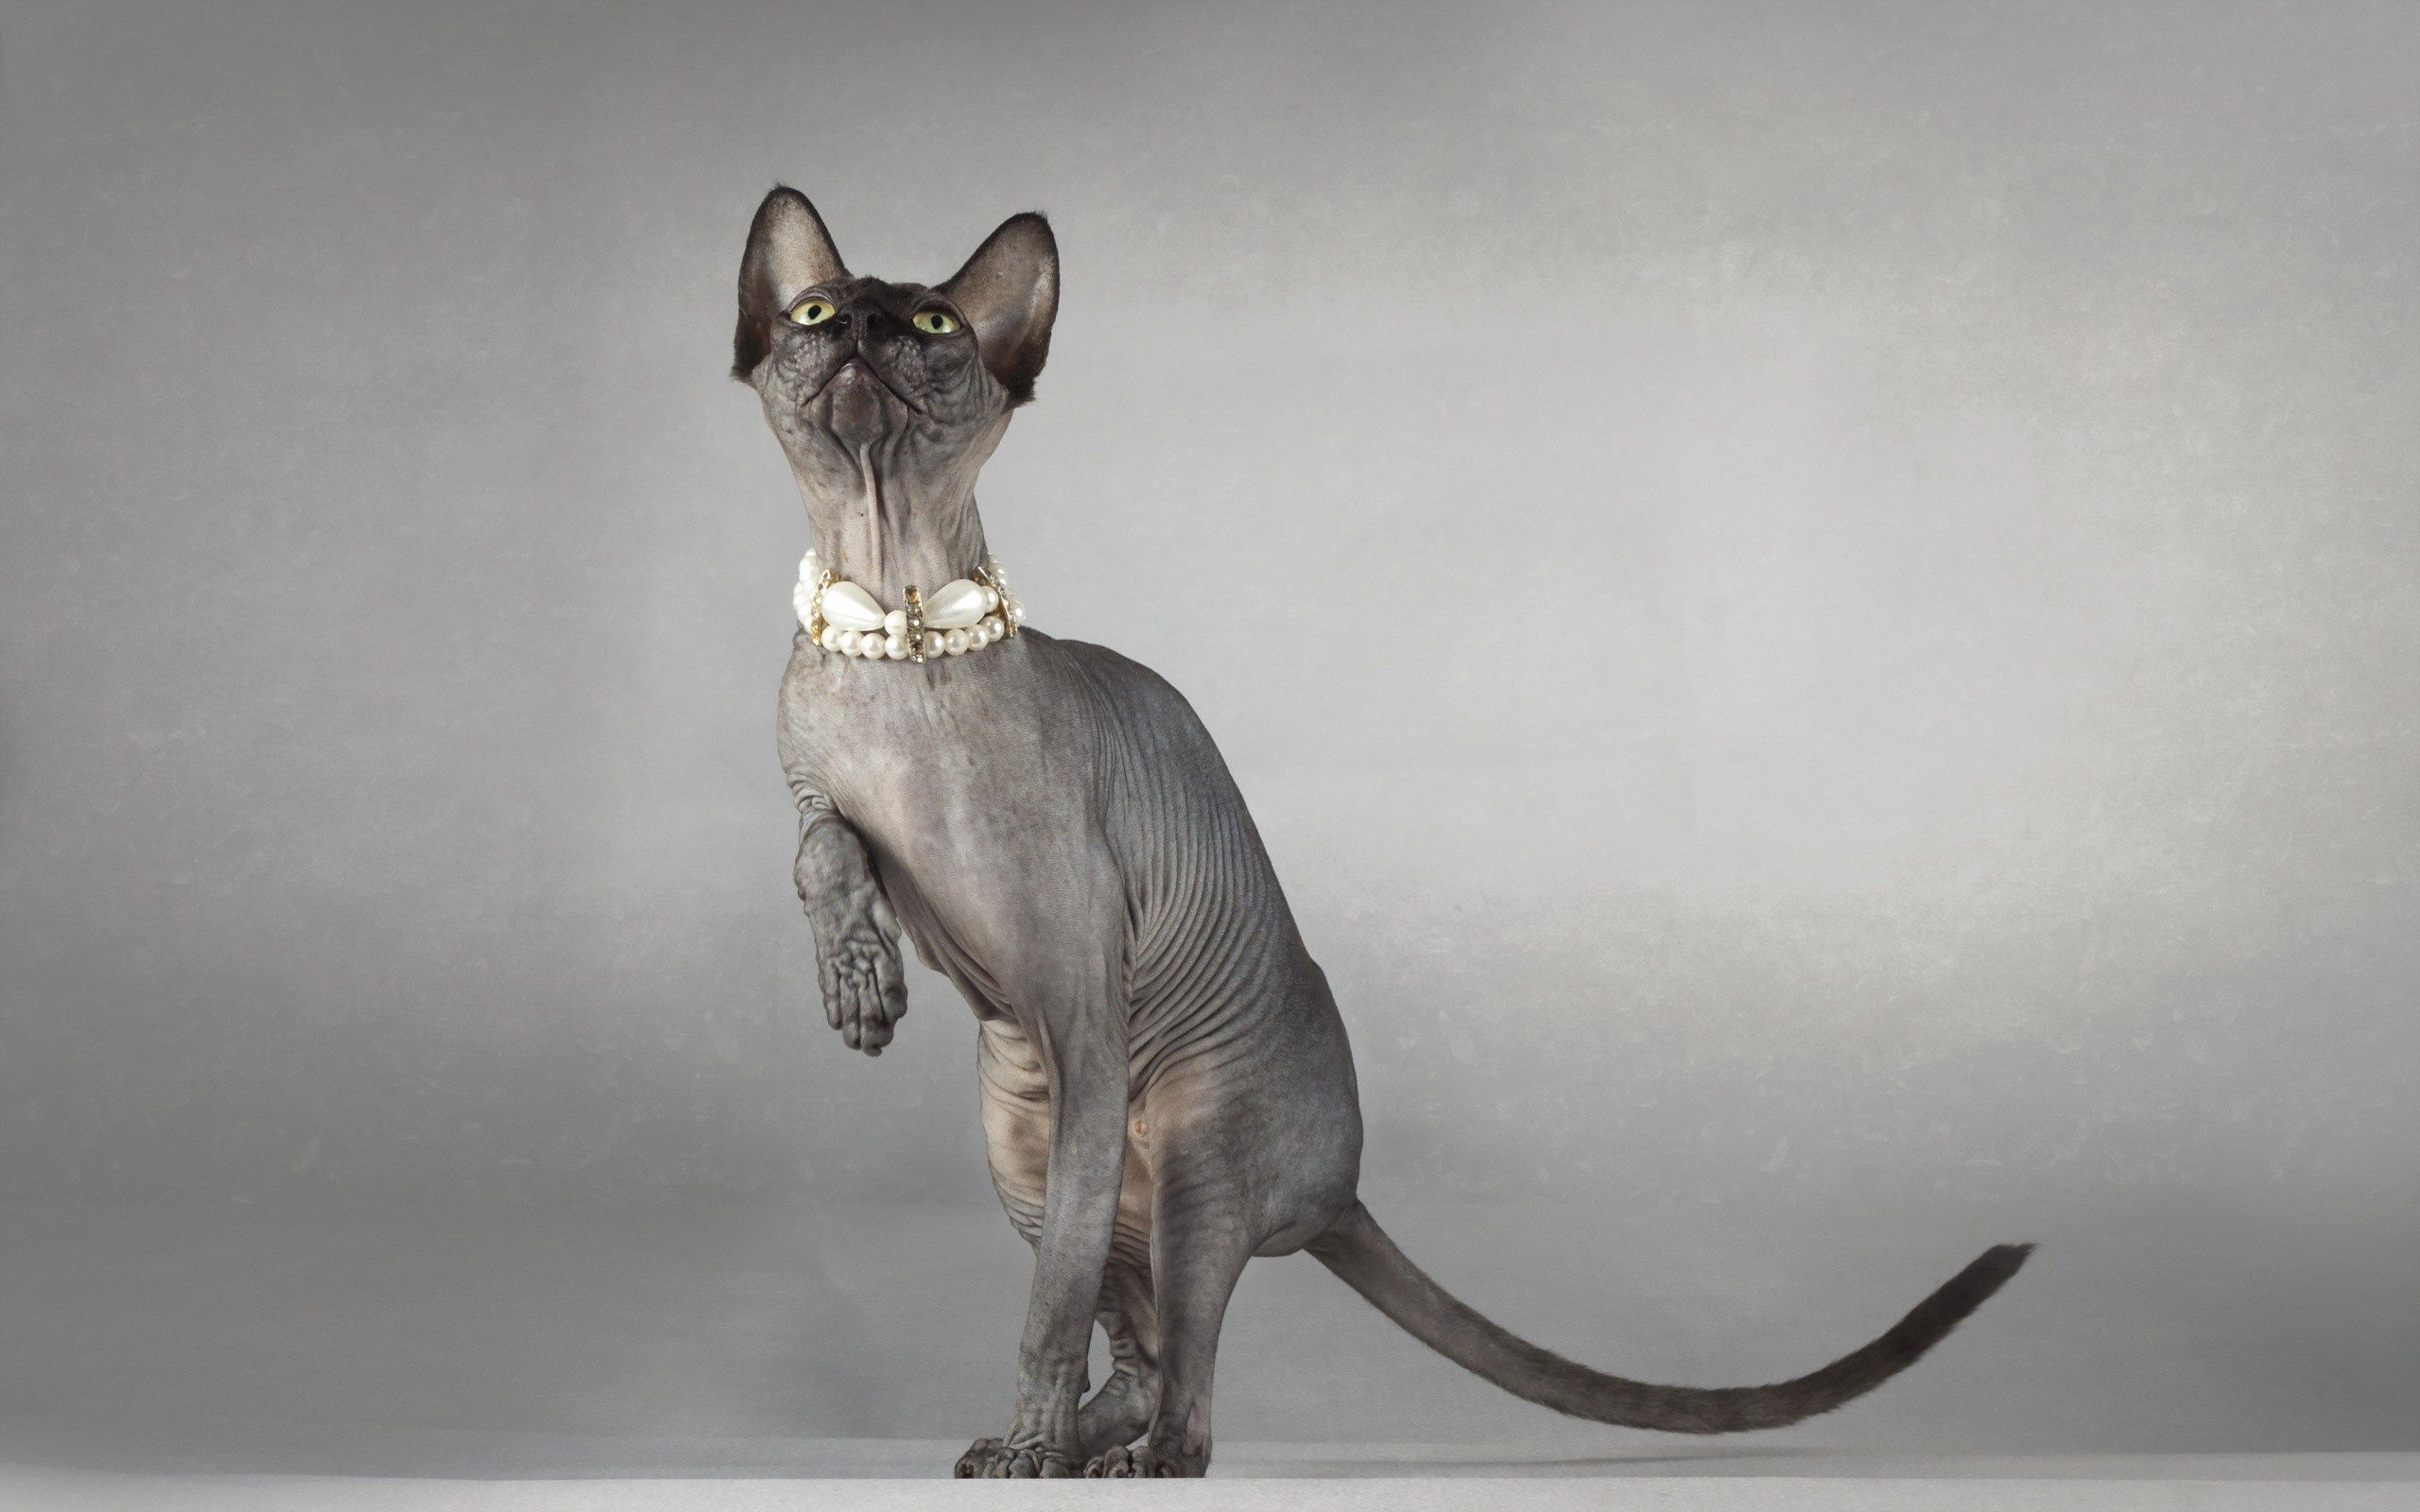 148733 download wallpaper Animals, Sphinx, Cat, Sight, Opinion, Playful, Collar screensavers and pictures for free